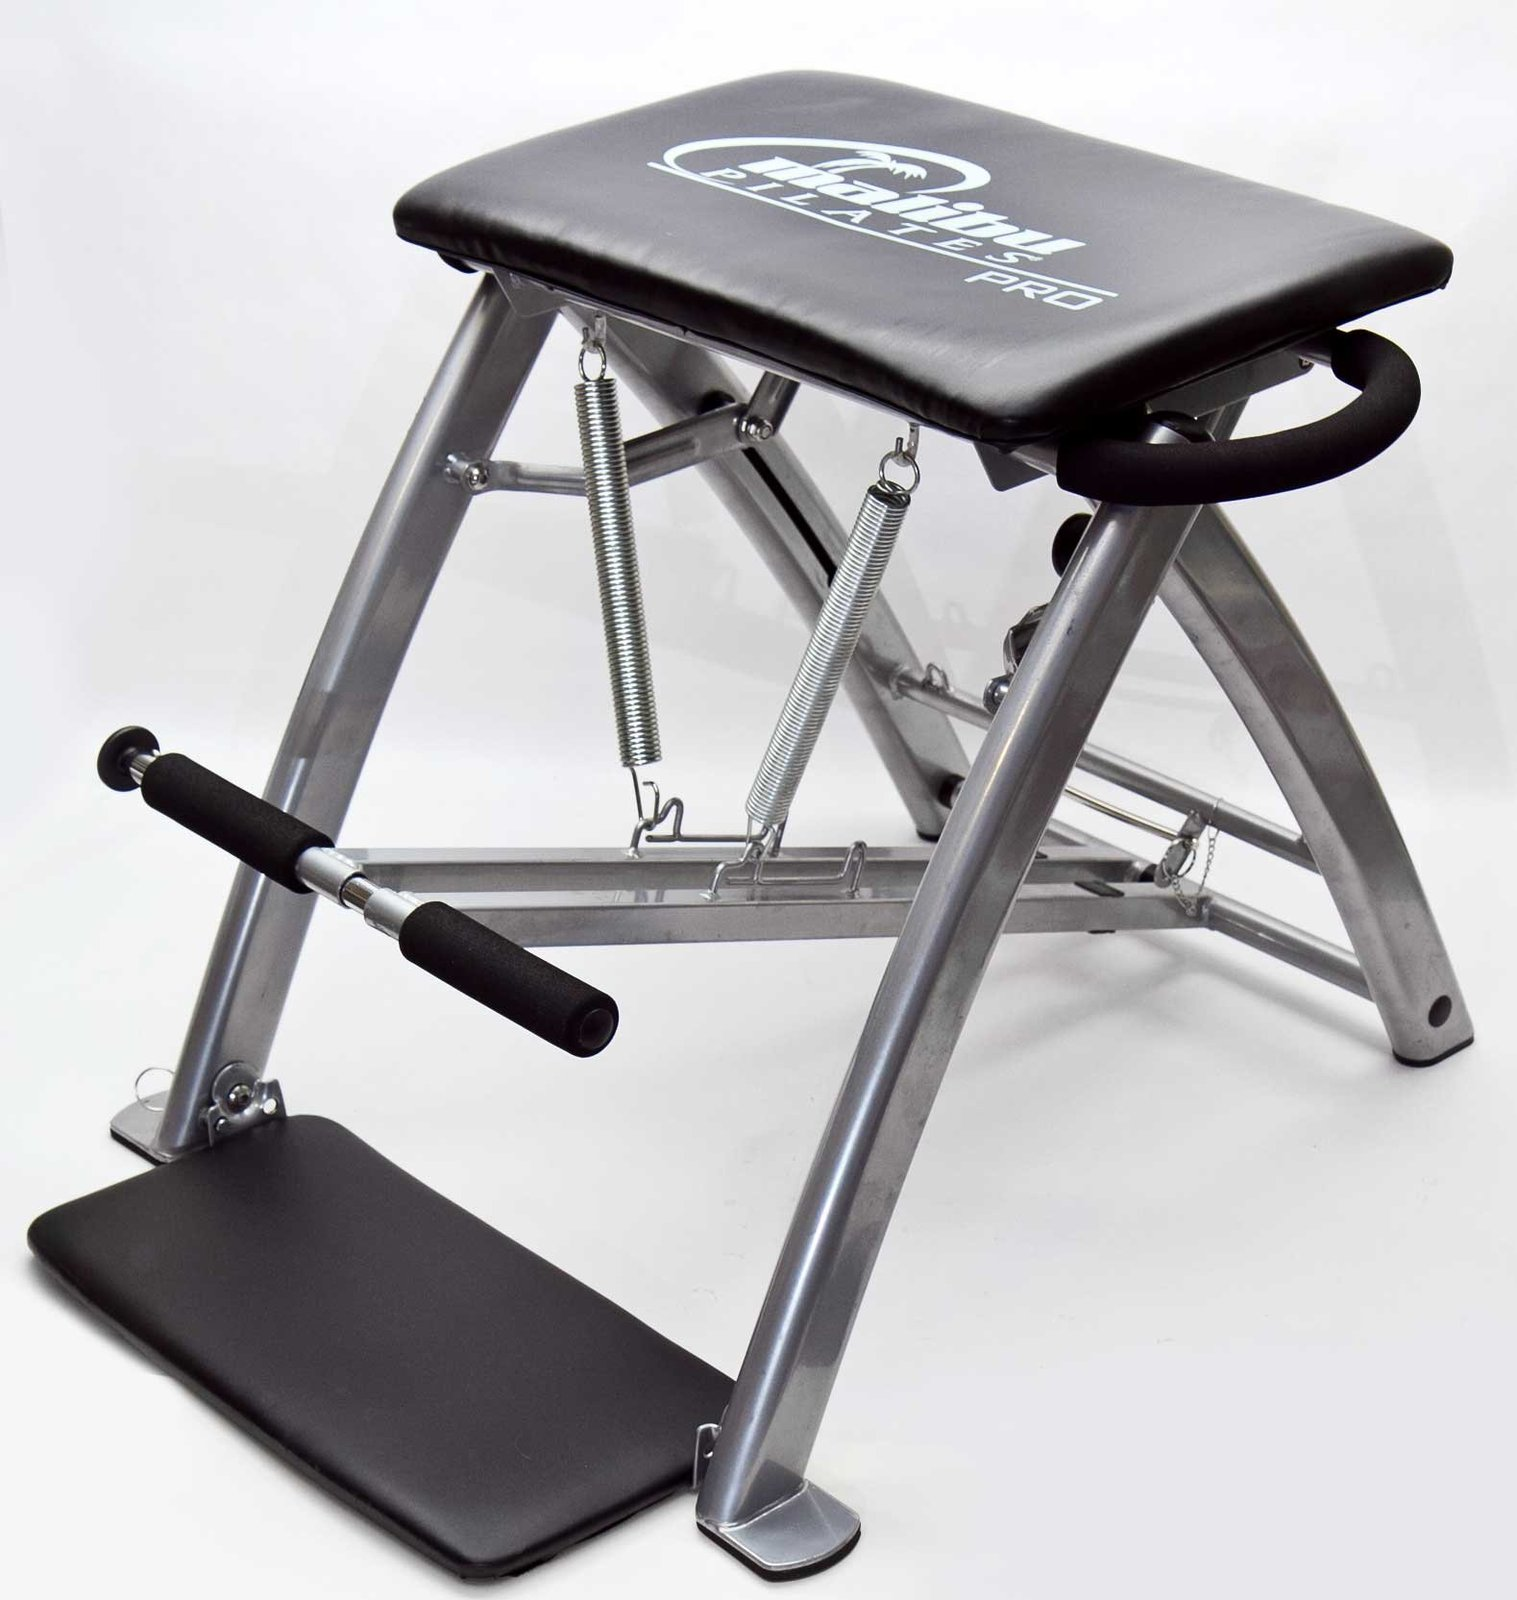 malibu pilates pro chair buy easy online accelerated results package